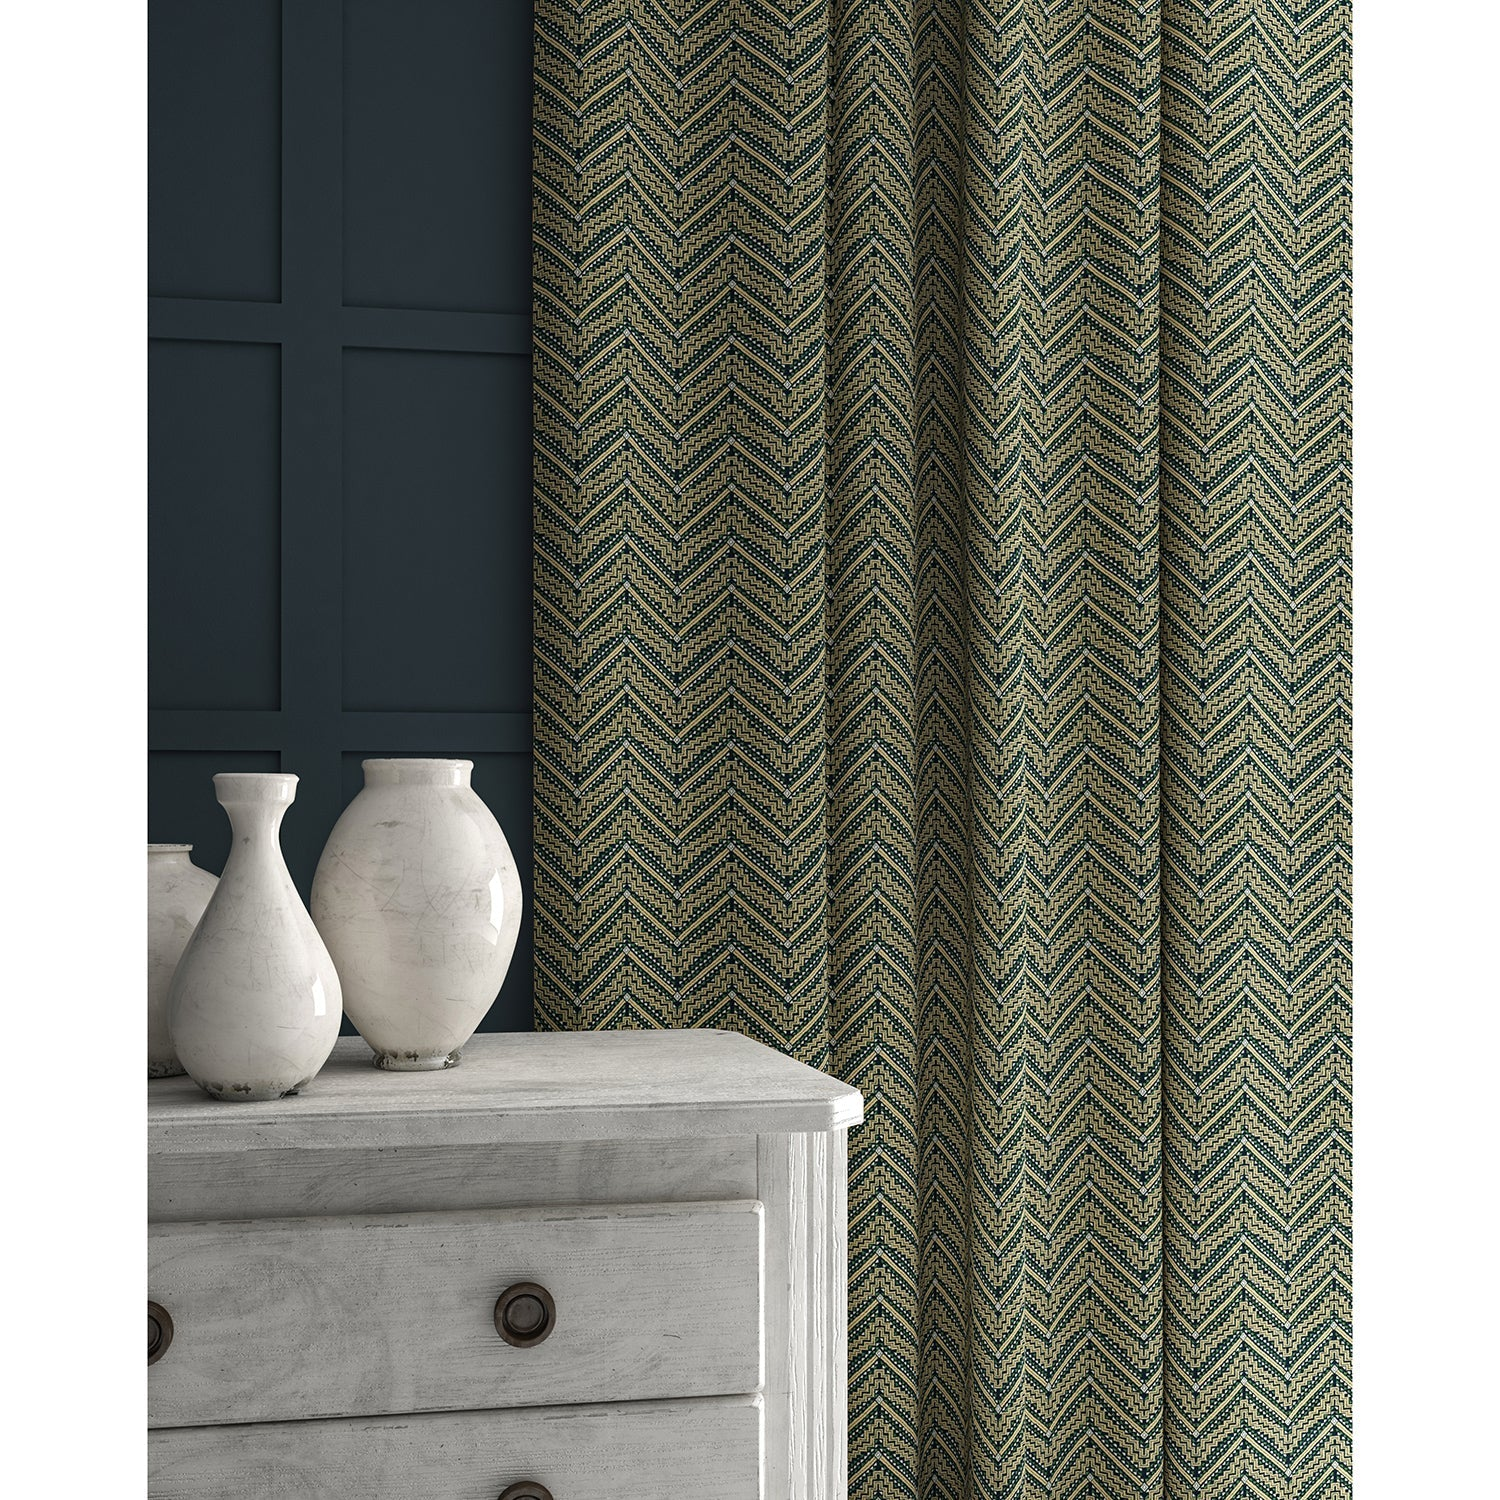 Curtains in a dark grey coloured zig zag geometric weave fabric